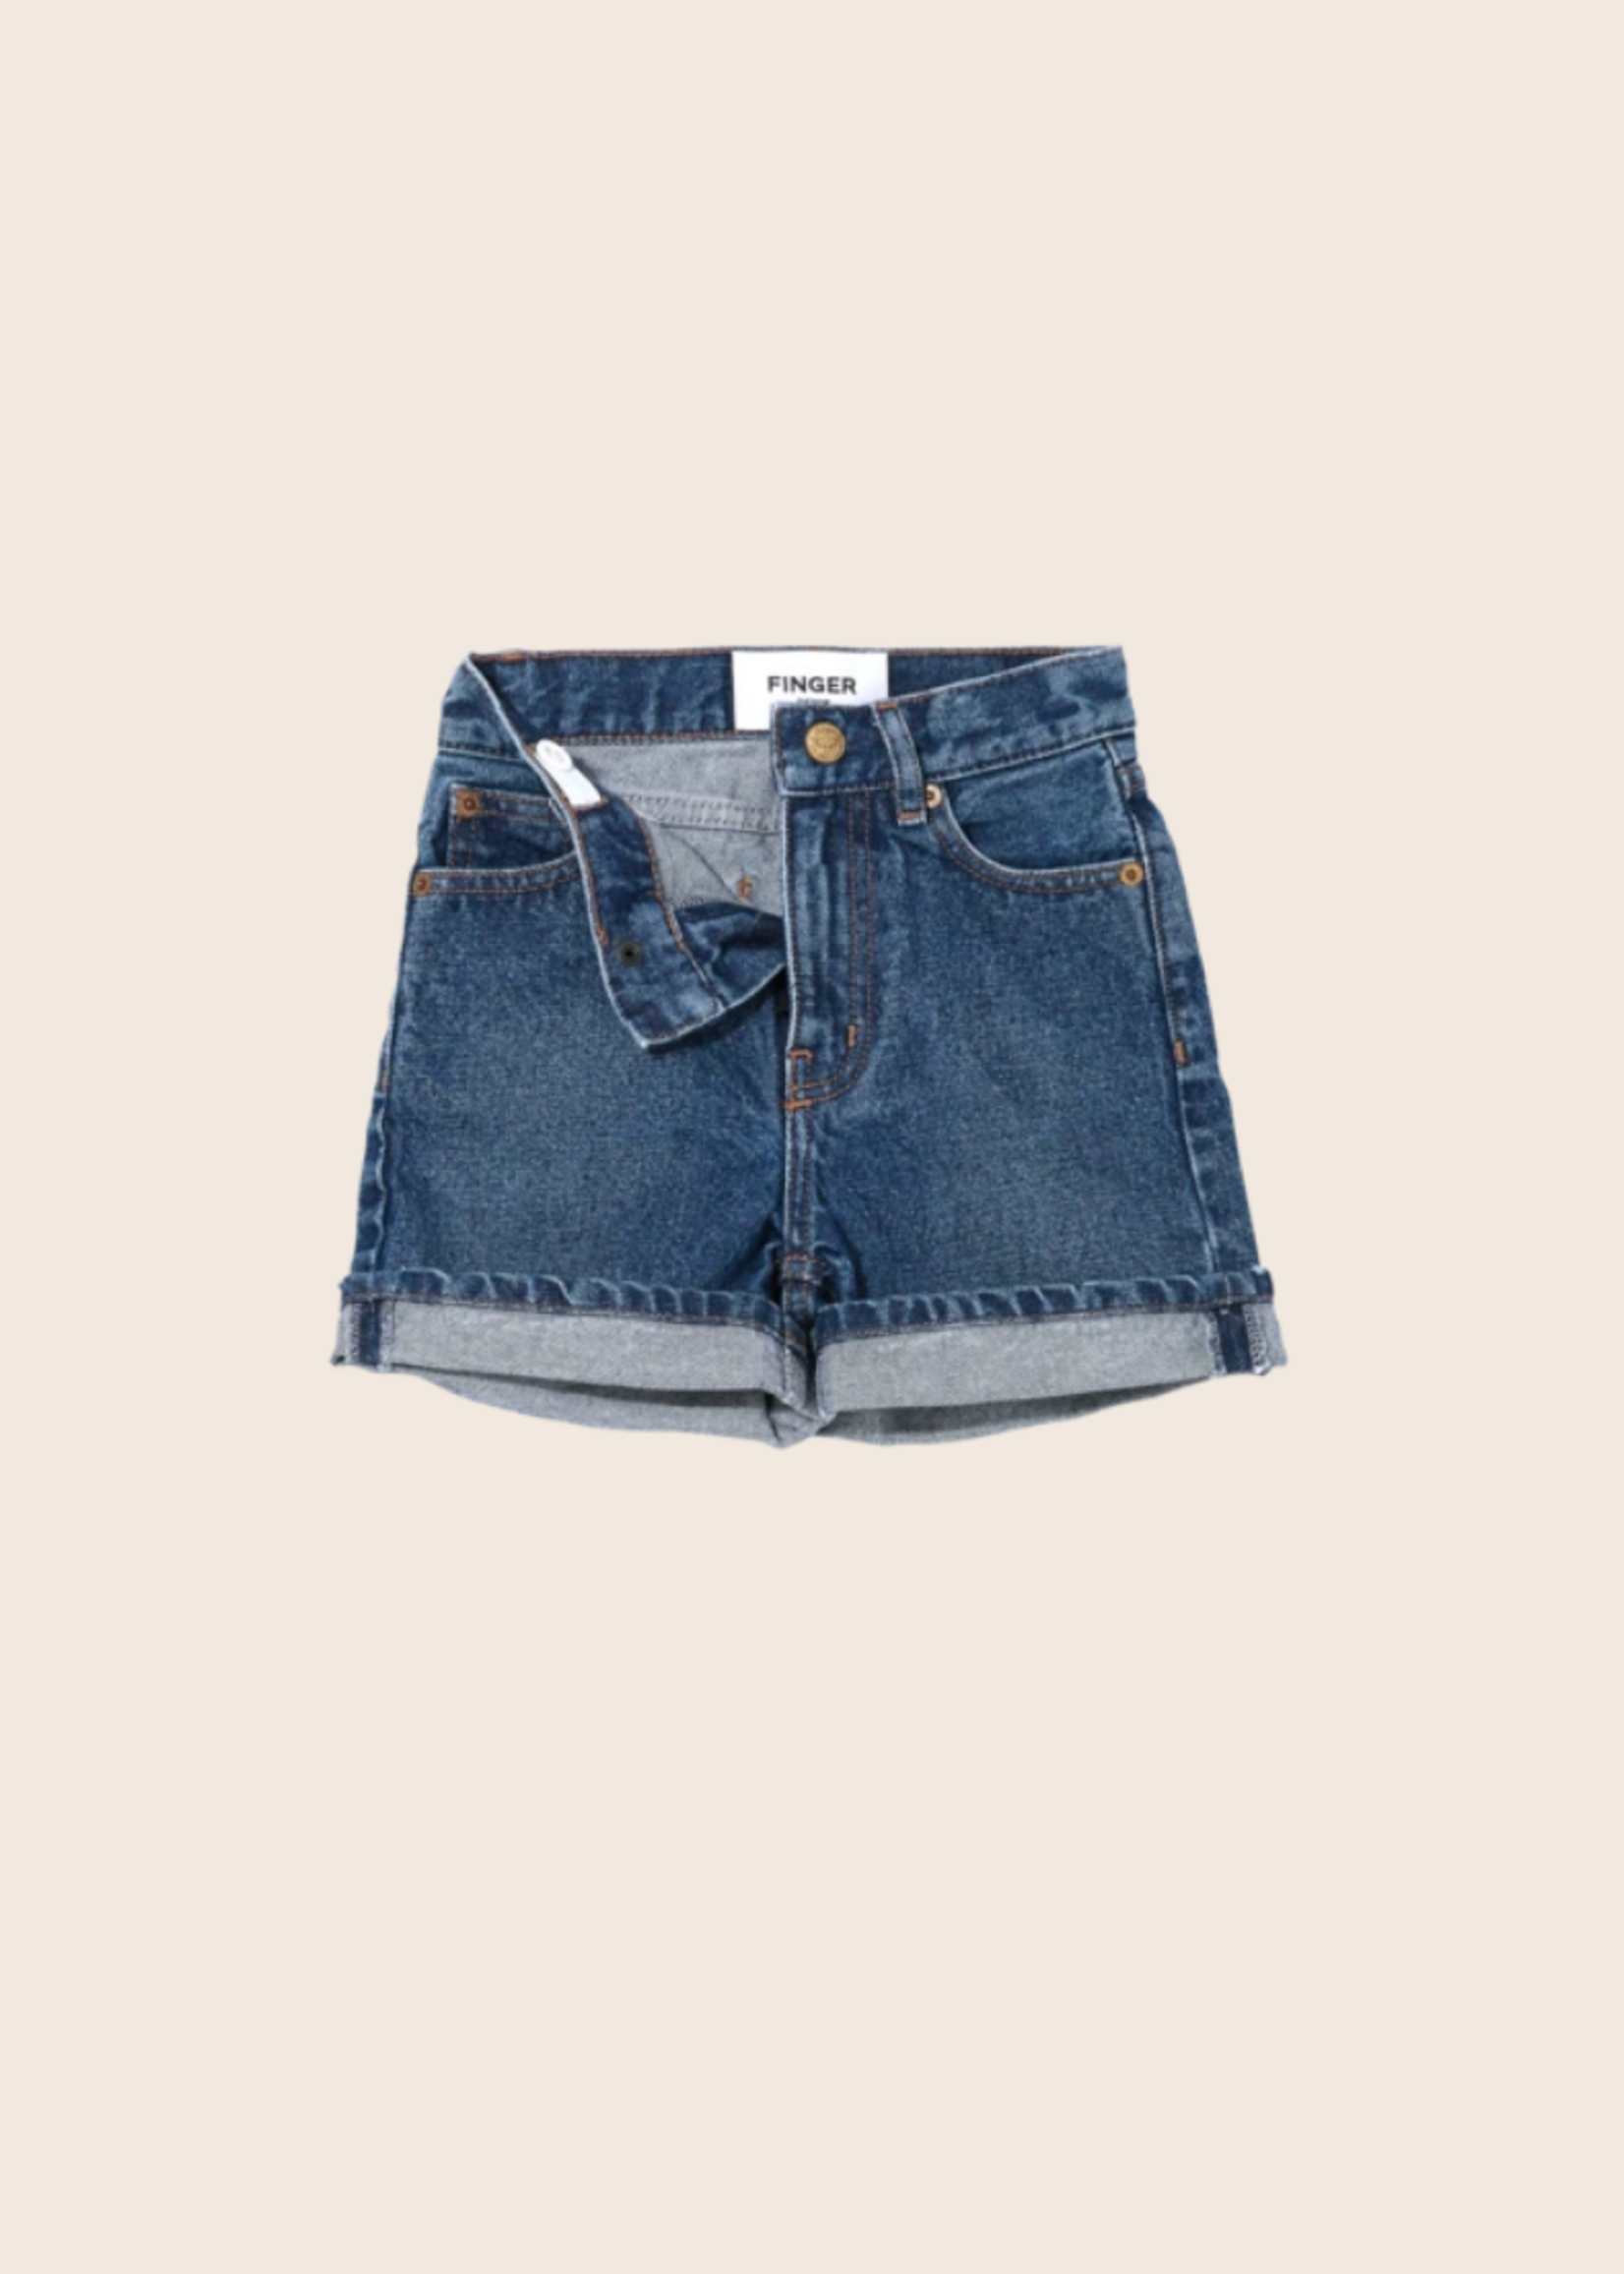 FINGER IN THE NOSE CHERRYL Medium Blue - High Waist 5 Pockets Shorts